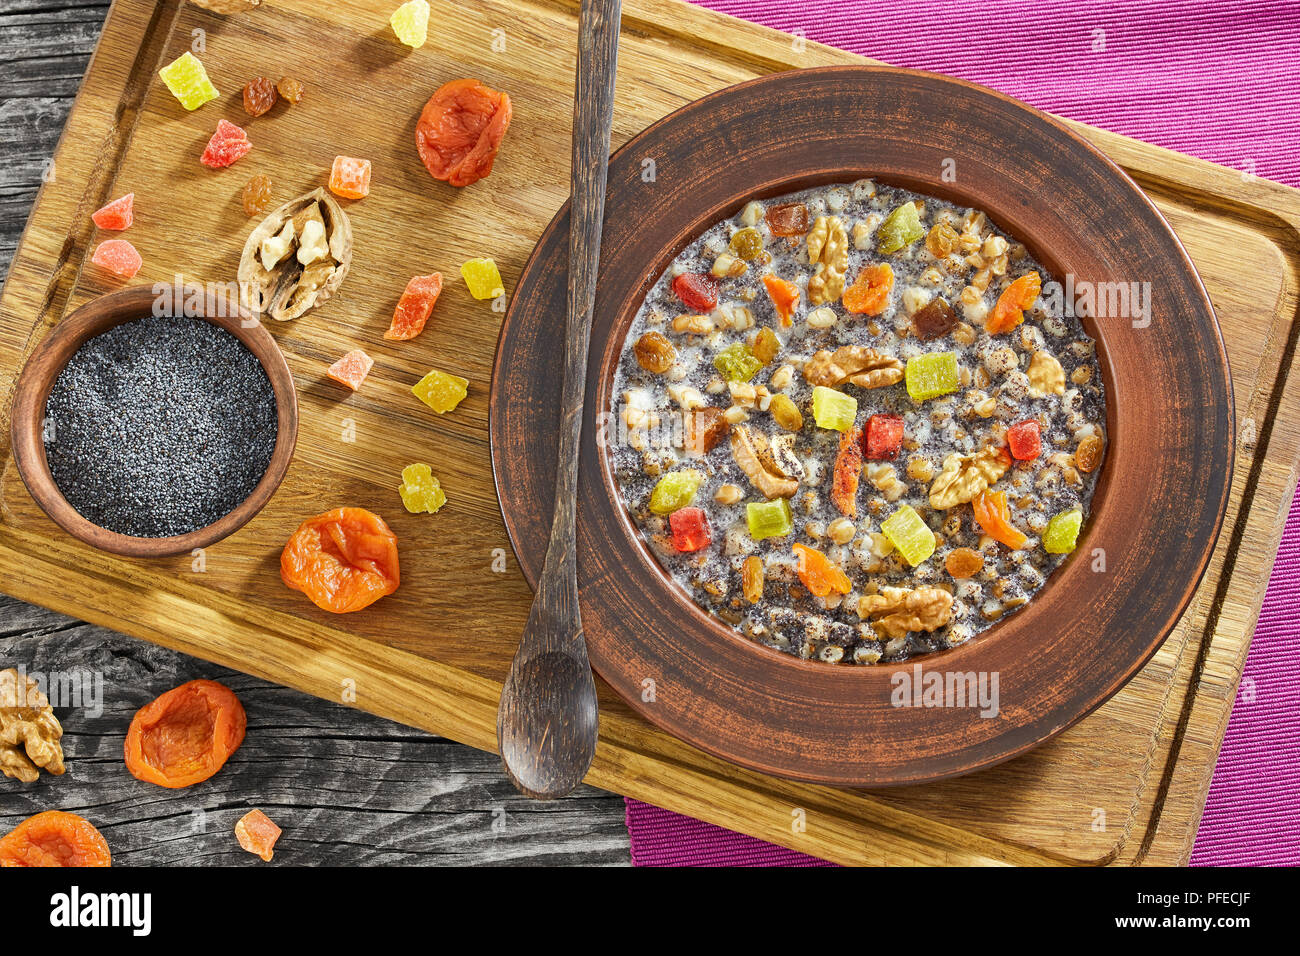 Traditional Christmas slavic dish kutia in ceramic bowl on chopping board with ingredients, view from above - Stock Image